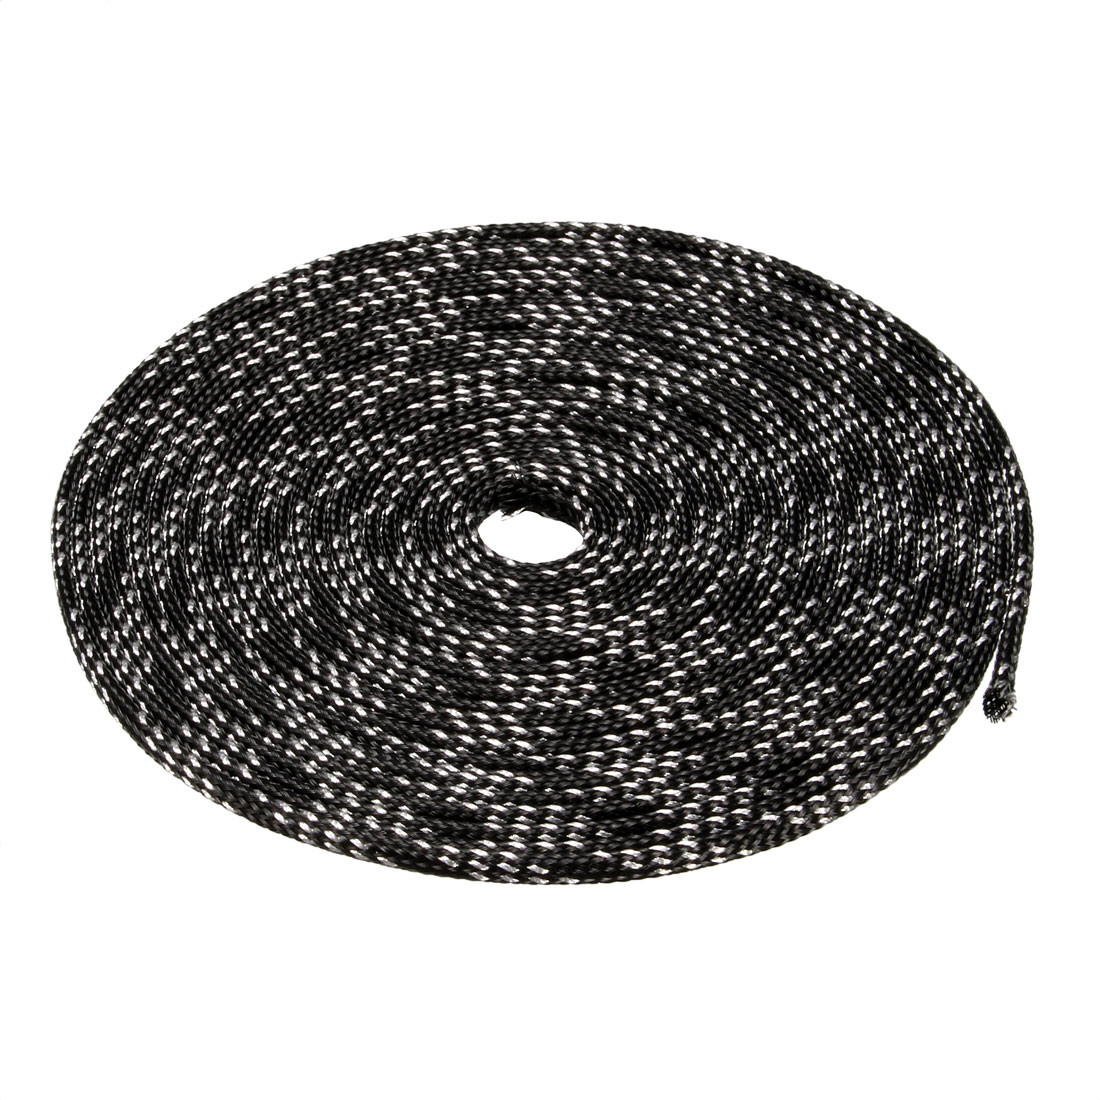 3mm PET Cable Wire Wrap Expandable Braided Sleeving Black Silver Tone 5M Length